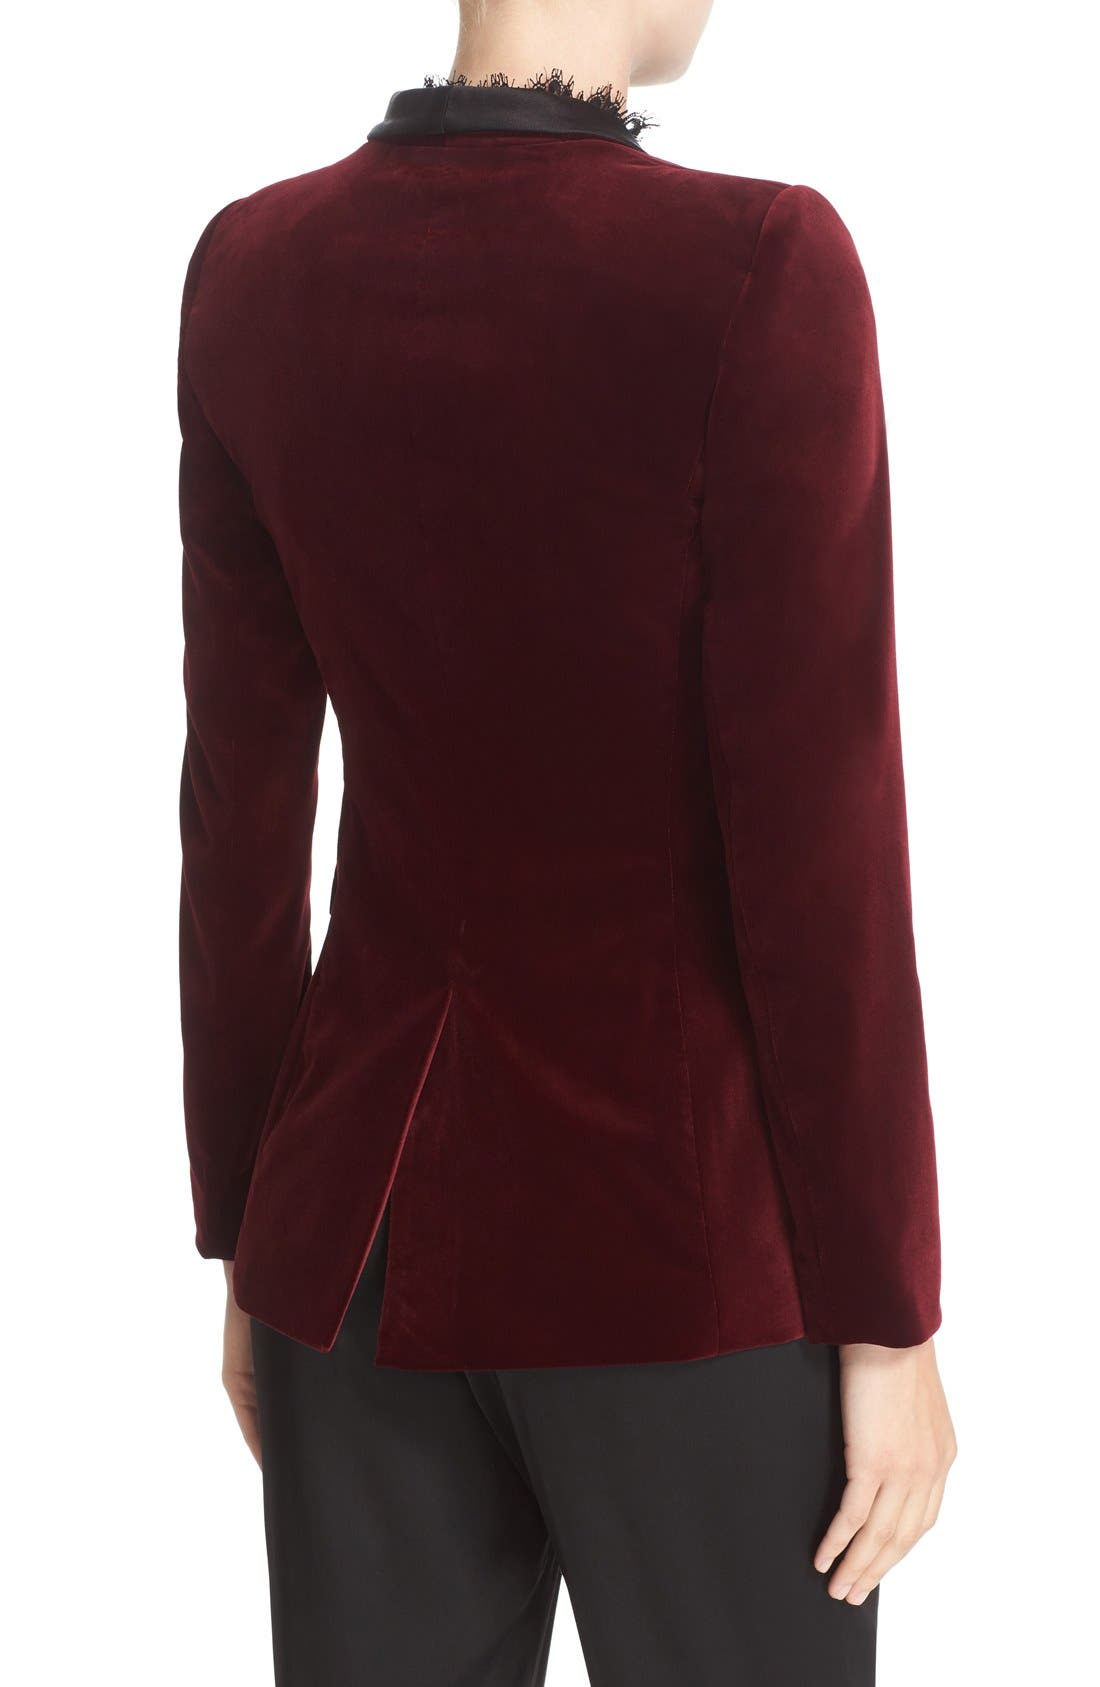 'Macey' Satin Lapel Velvet One-Button Blazer,                             Alternate thumbnail 3, color,                             Bordeaux/ Black